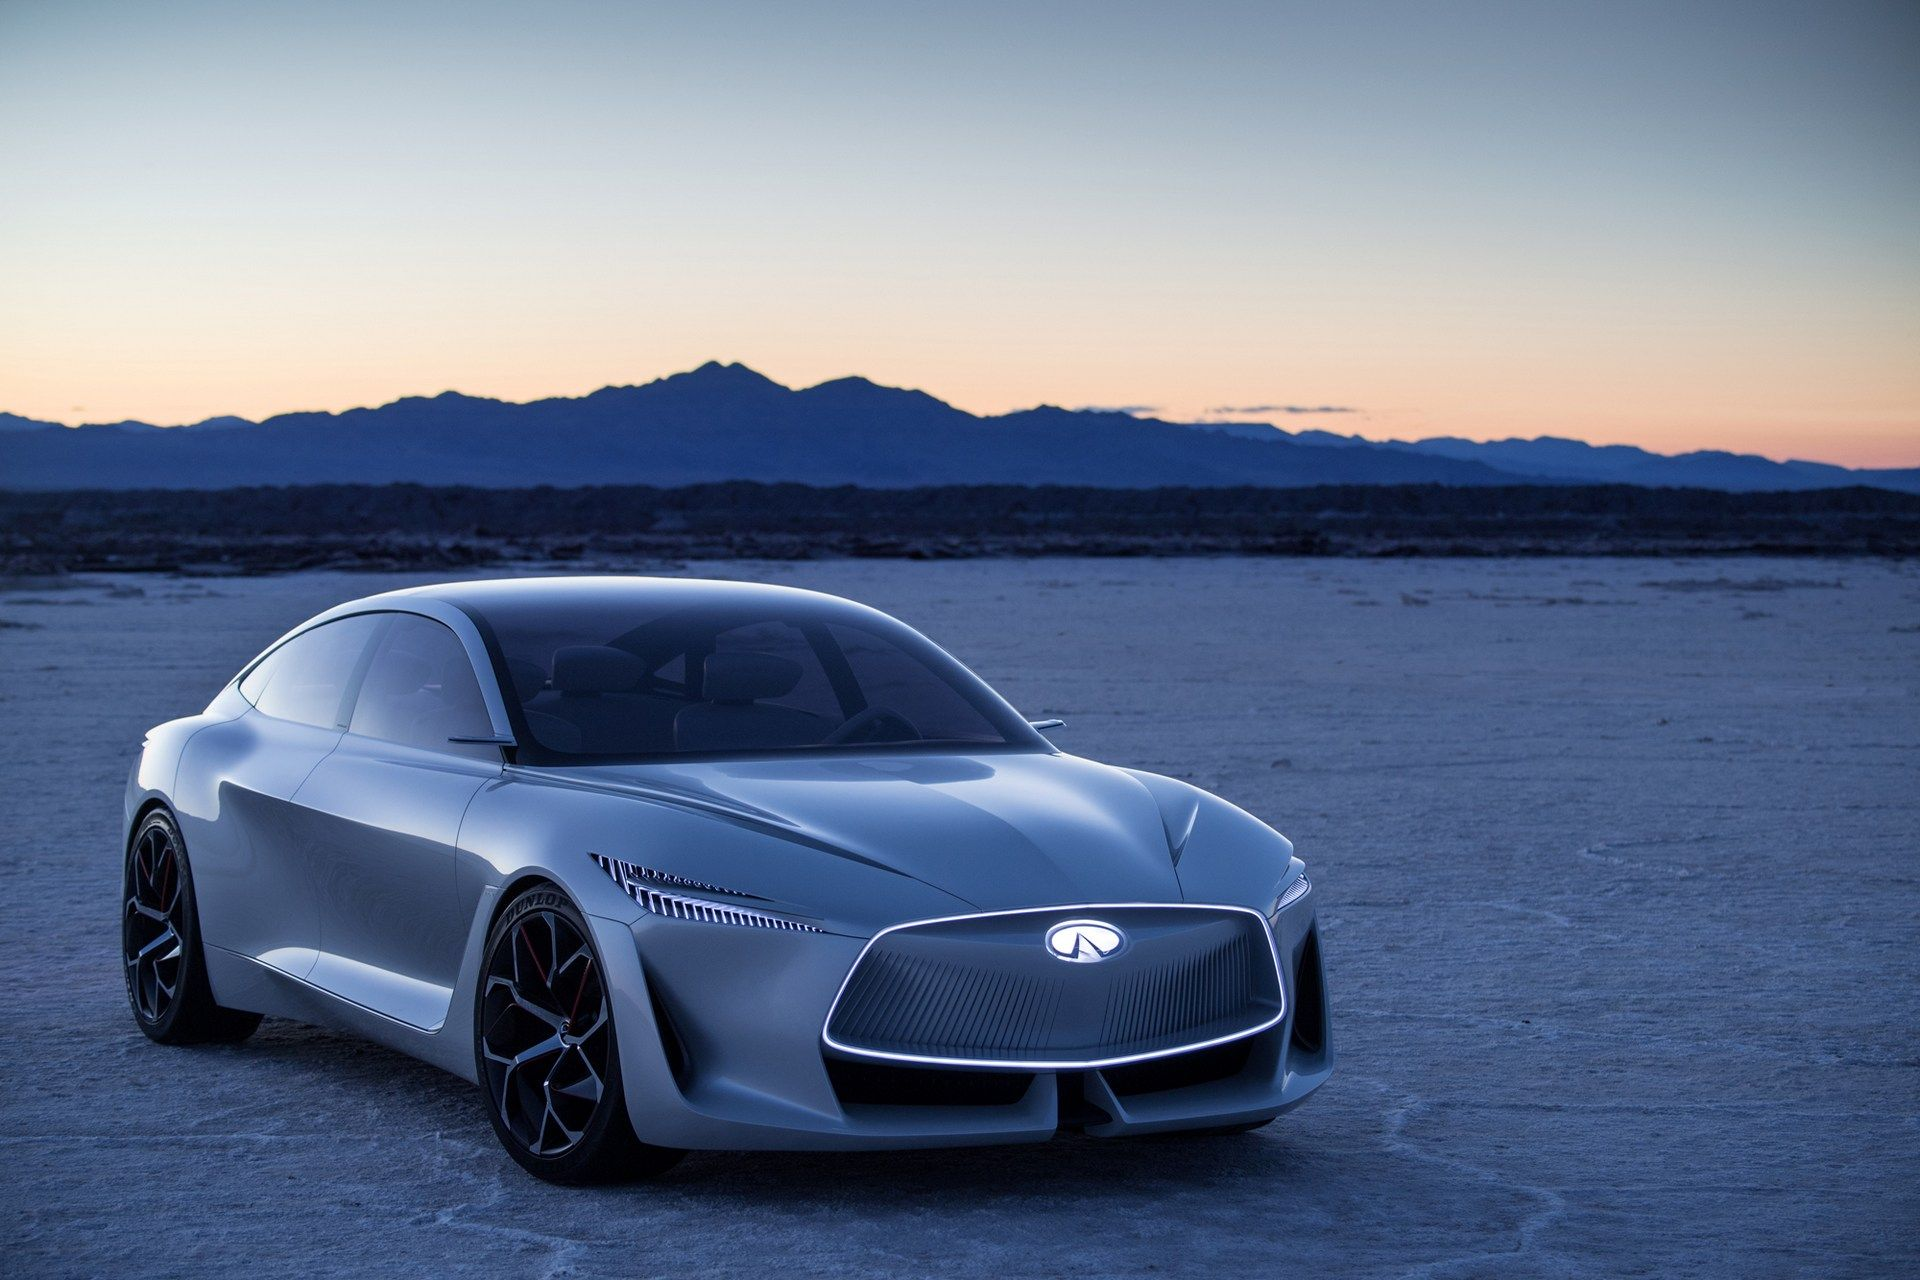 Infiniti wants to build an electric auto based on the Q concept